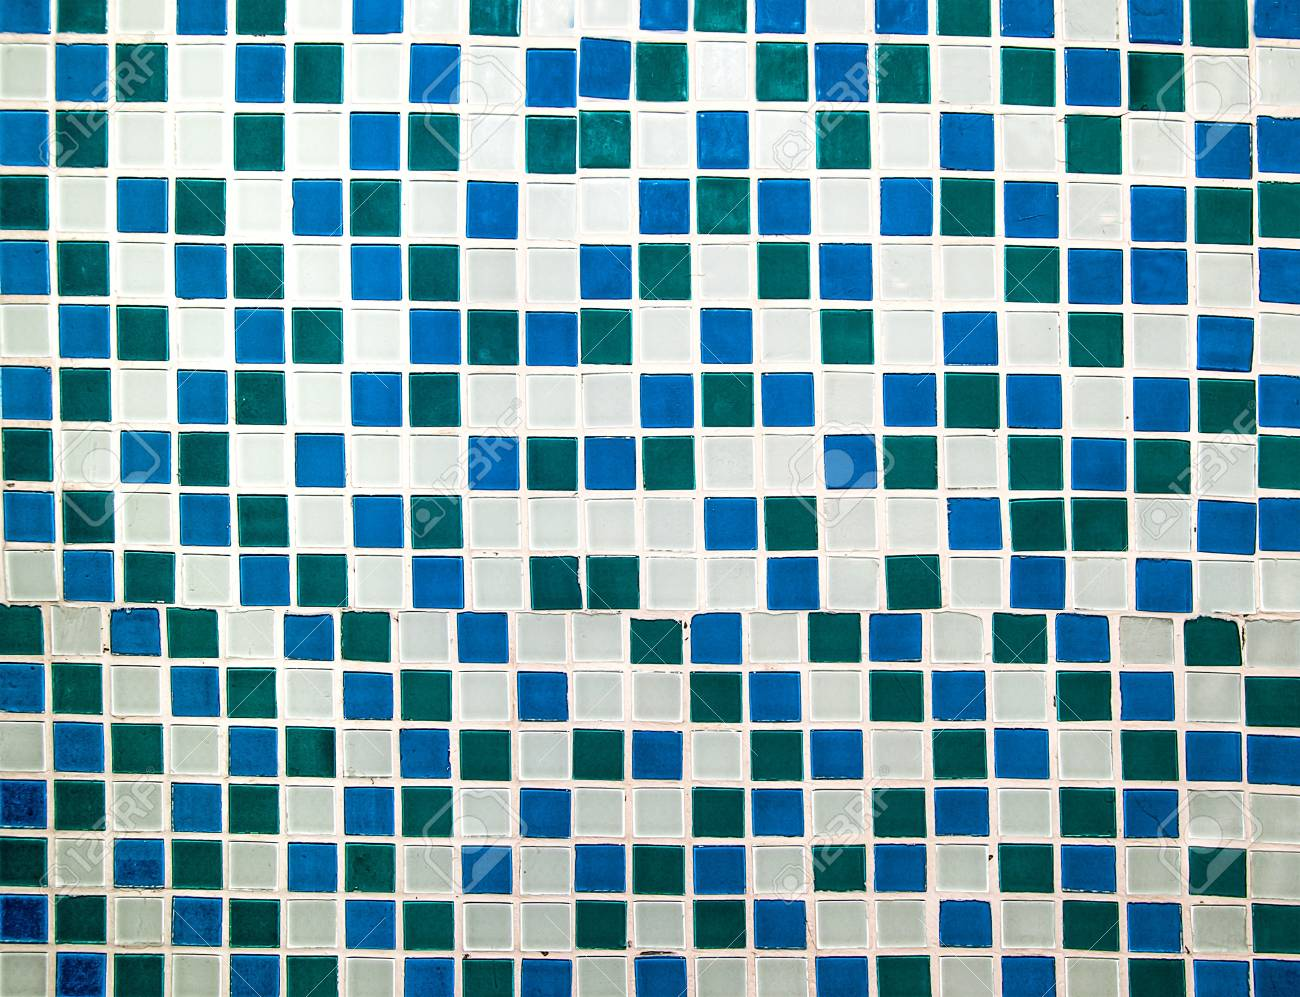 Colorful Ceramic Tiles Wall Decoration Stock Photo, Picture And ...